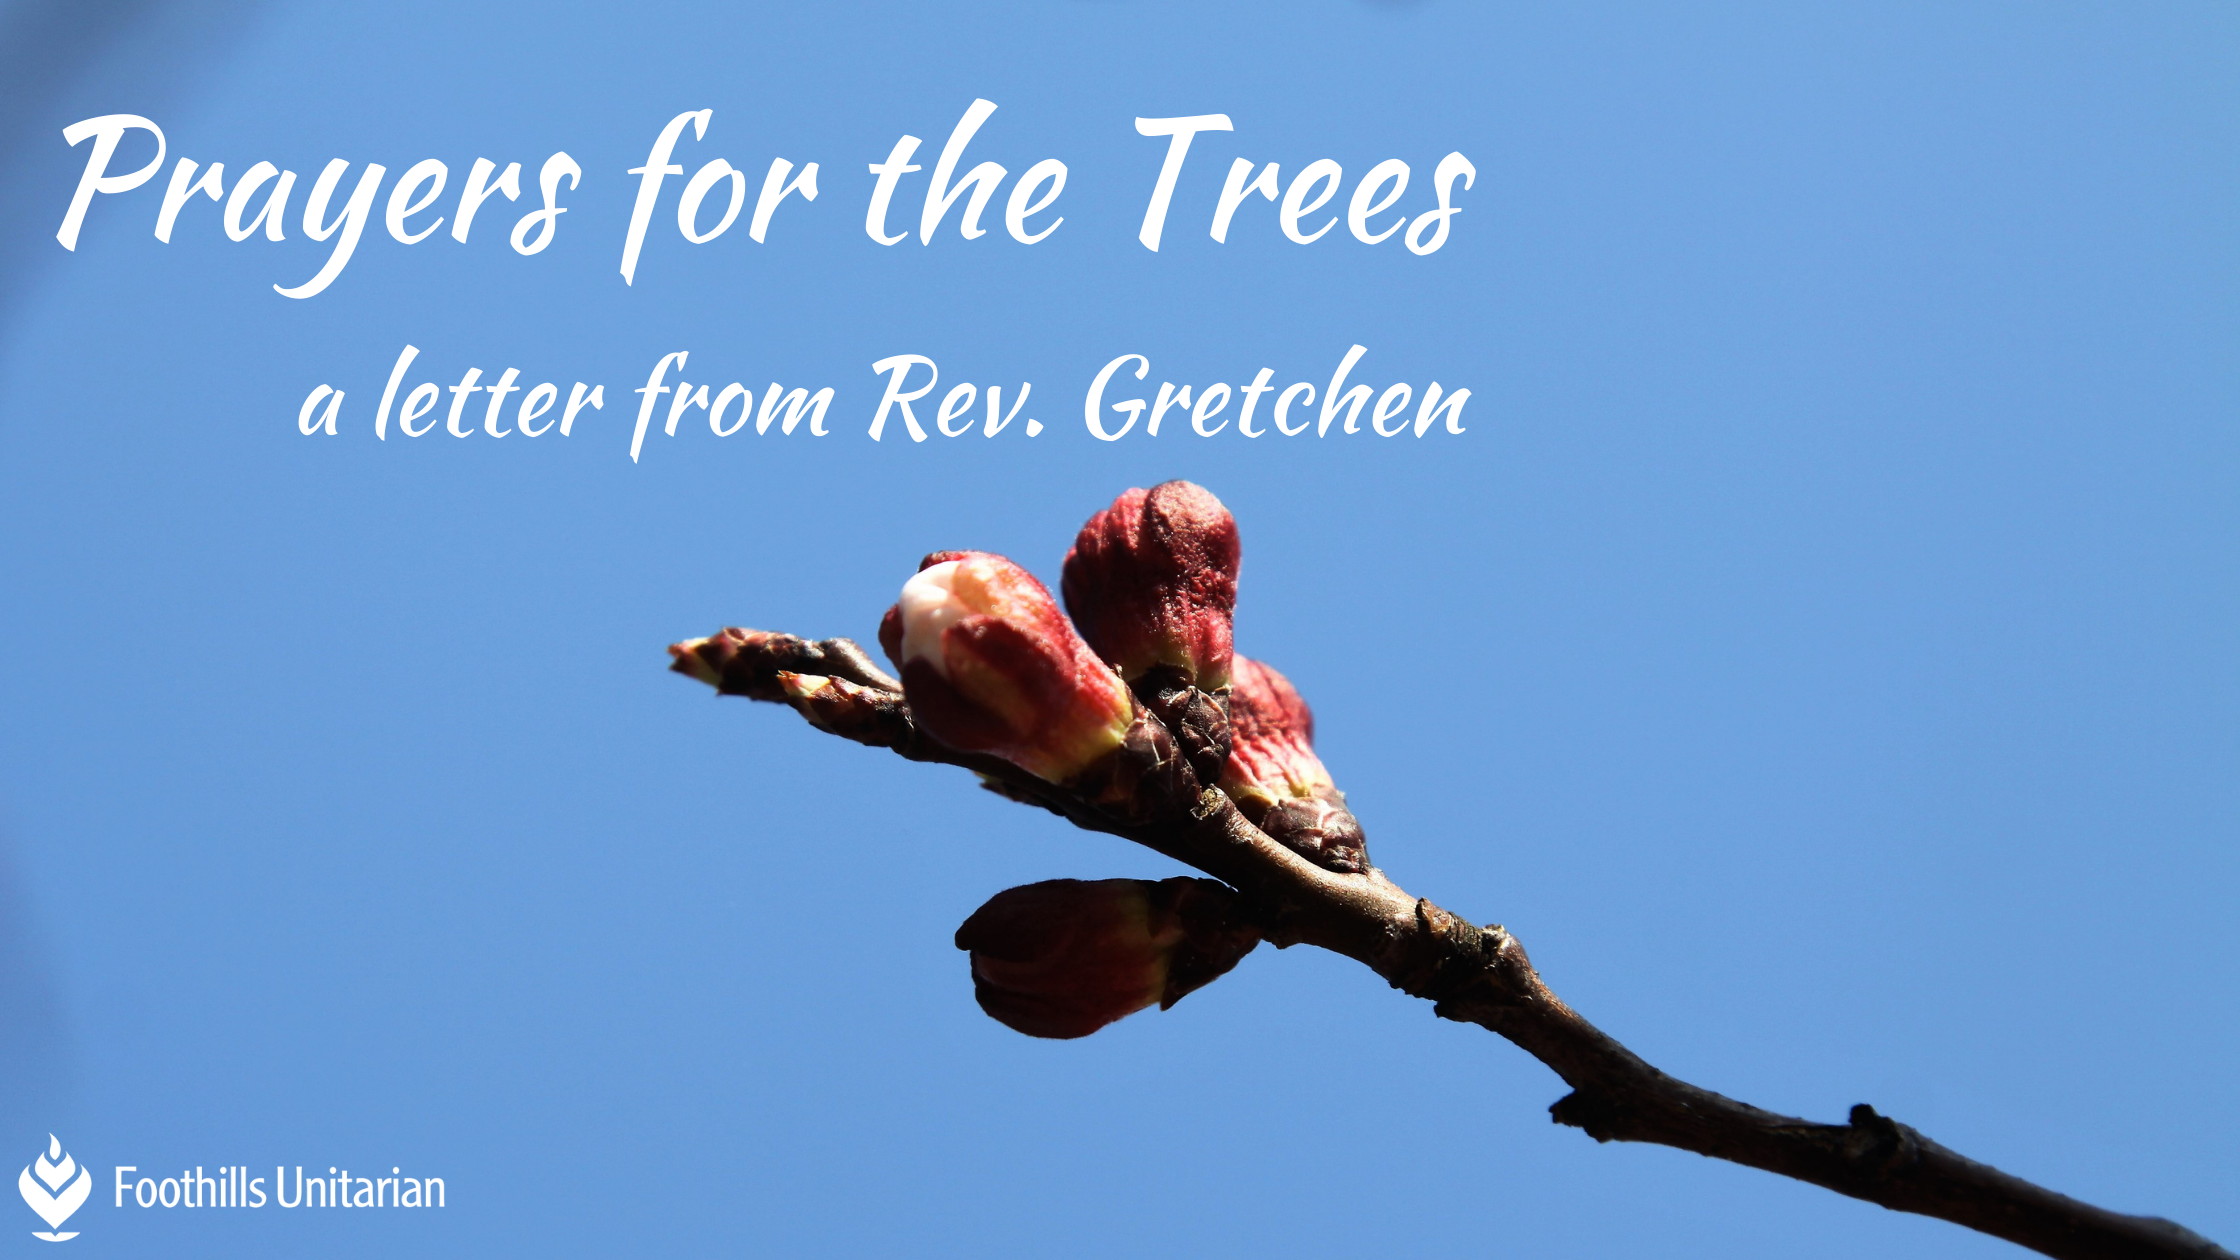 Prayers for the Trees: A Letter from Rev. Gretchen